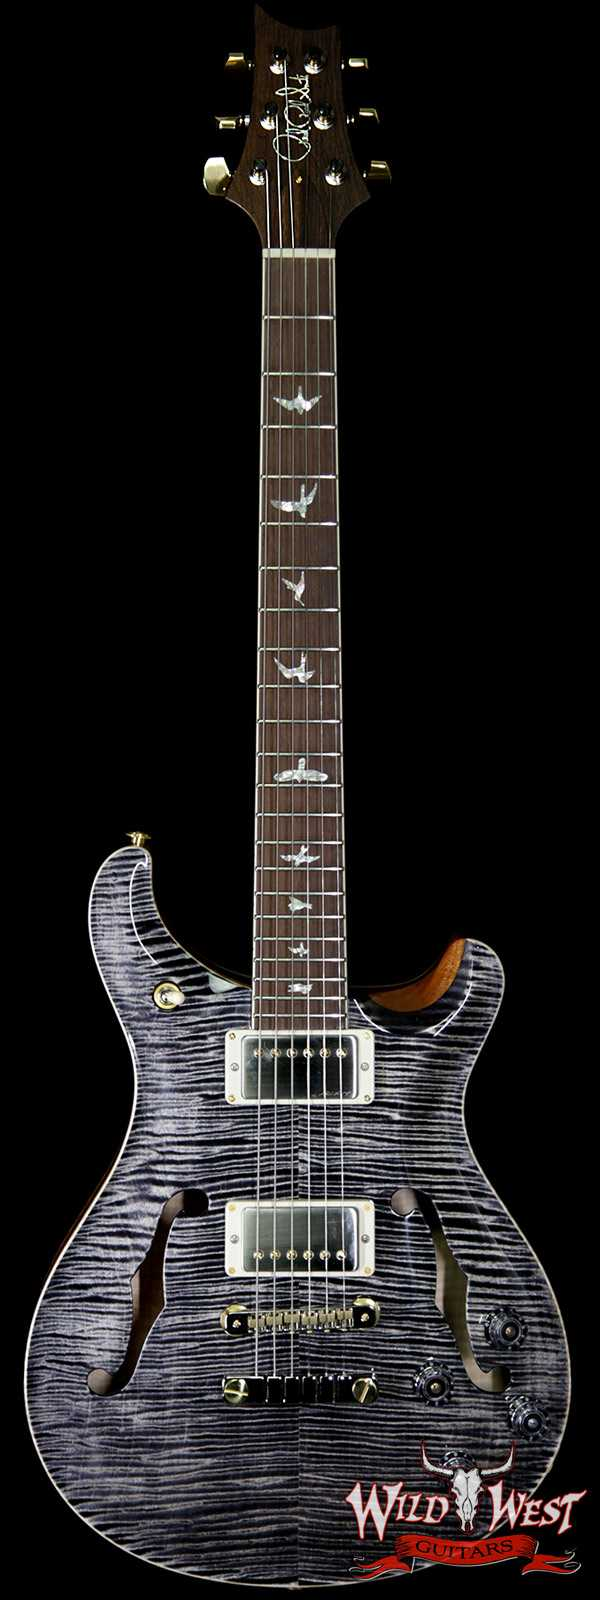 PRS Wild West Guitars 20th Anniversary Limited Run # 18 of 40 Wood Library Artist Package McCarty 594 Hollowbody II Charcoal